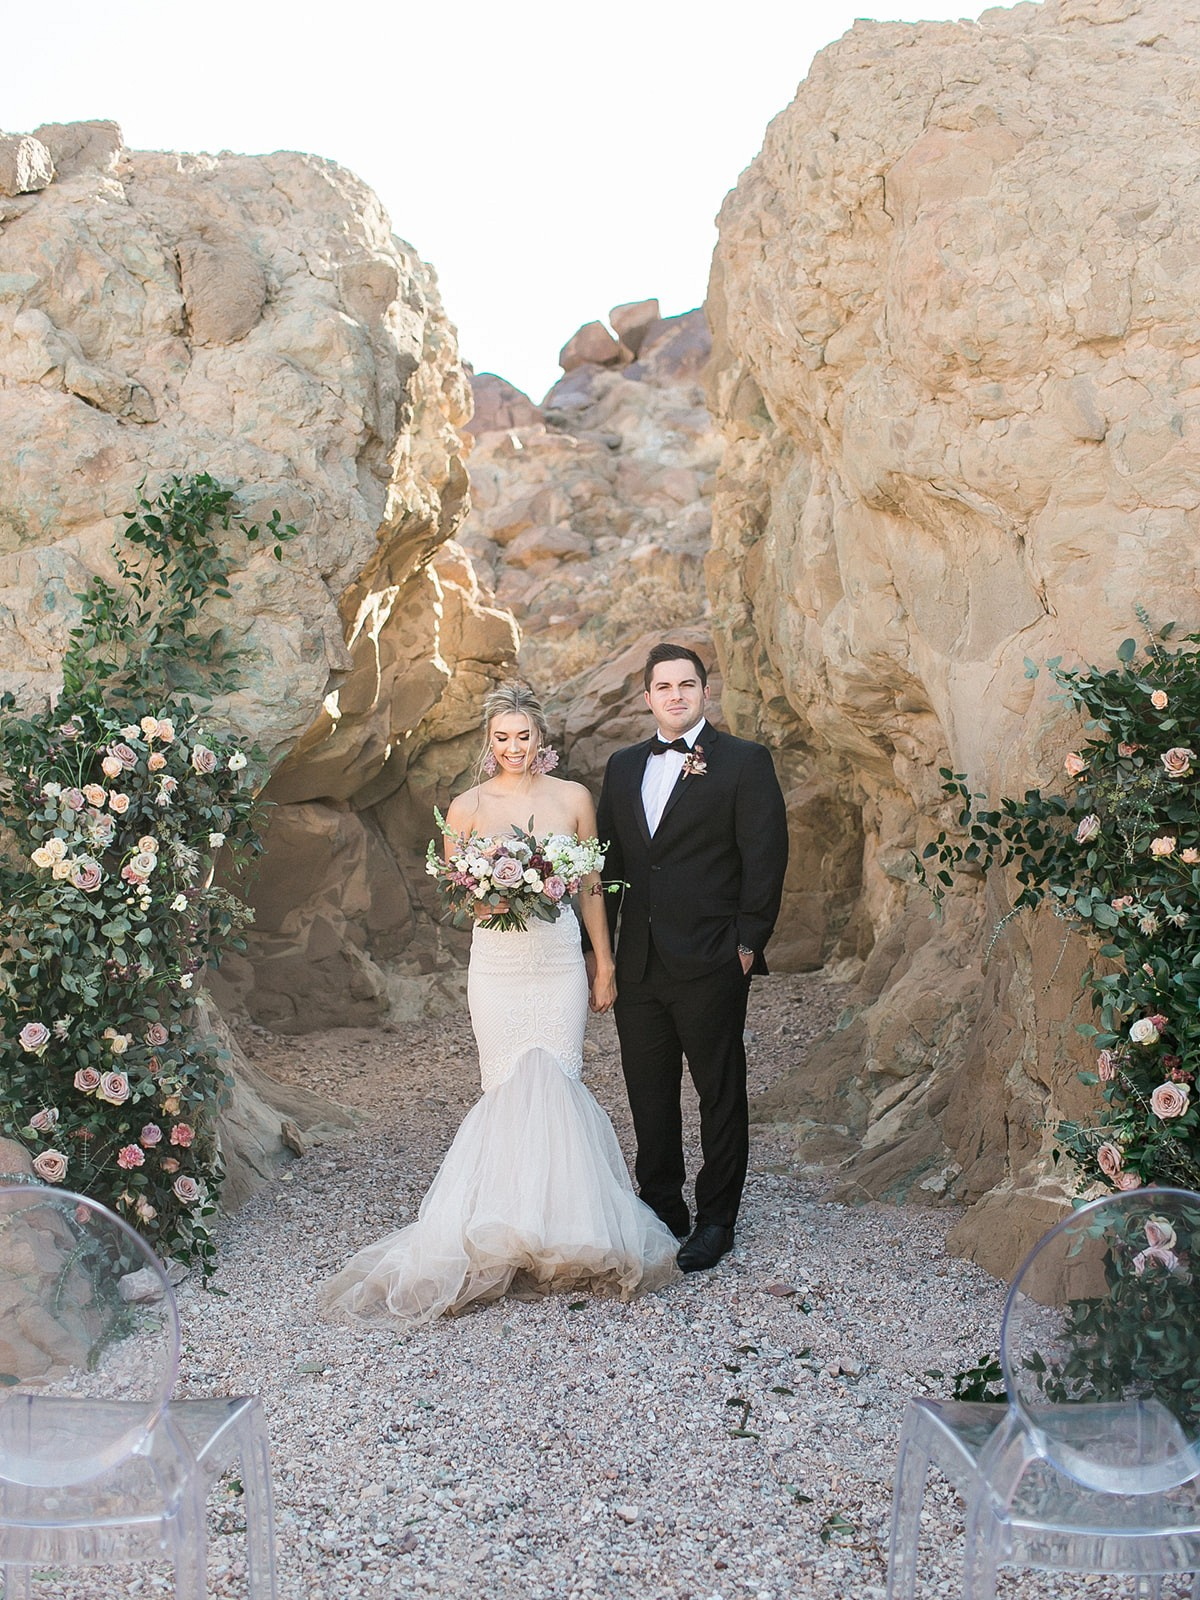 Intimate Ceremony in the Desert with Mauve Florals